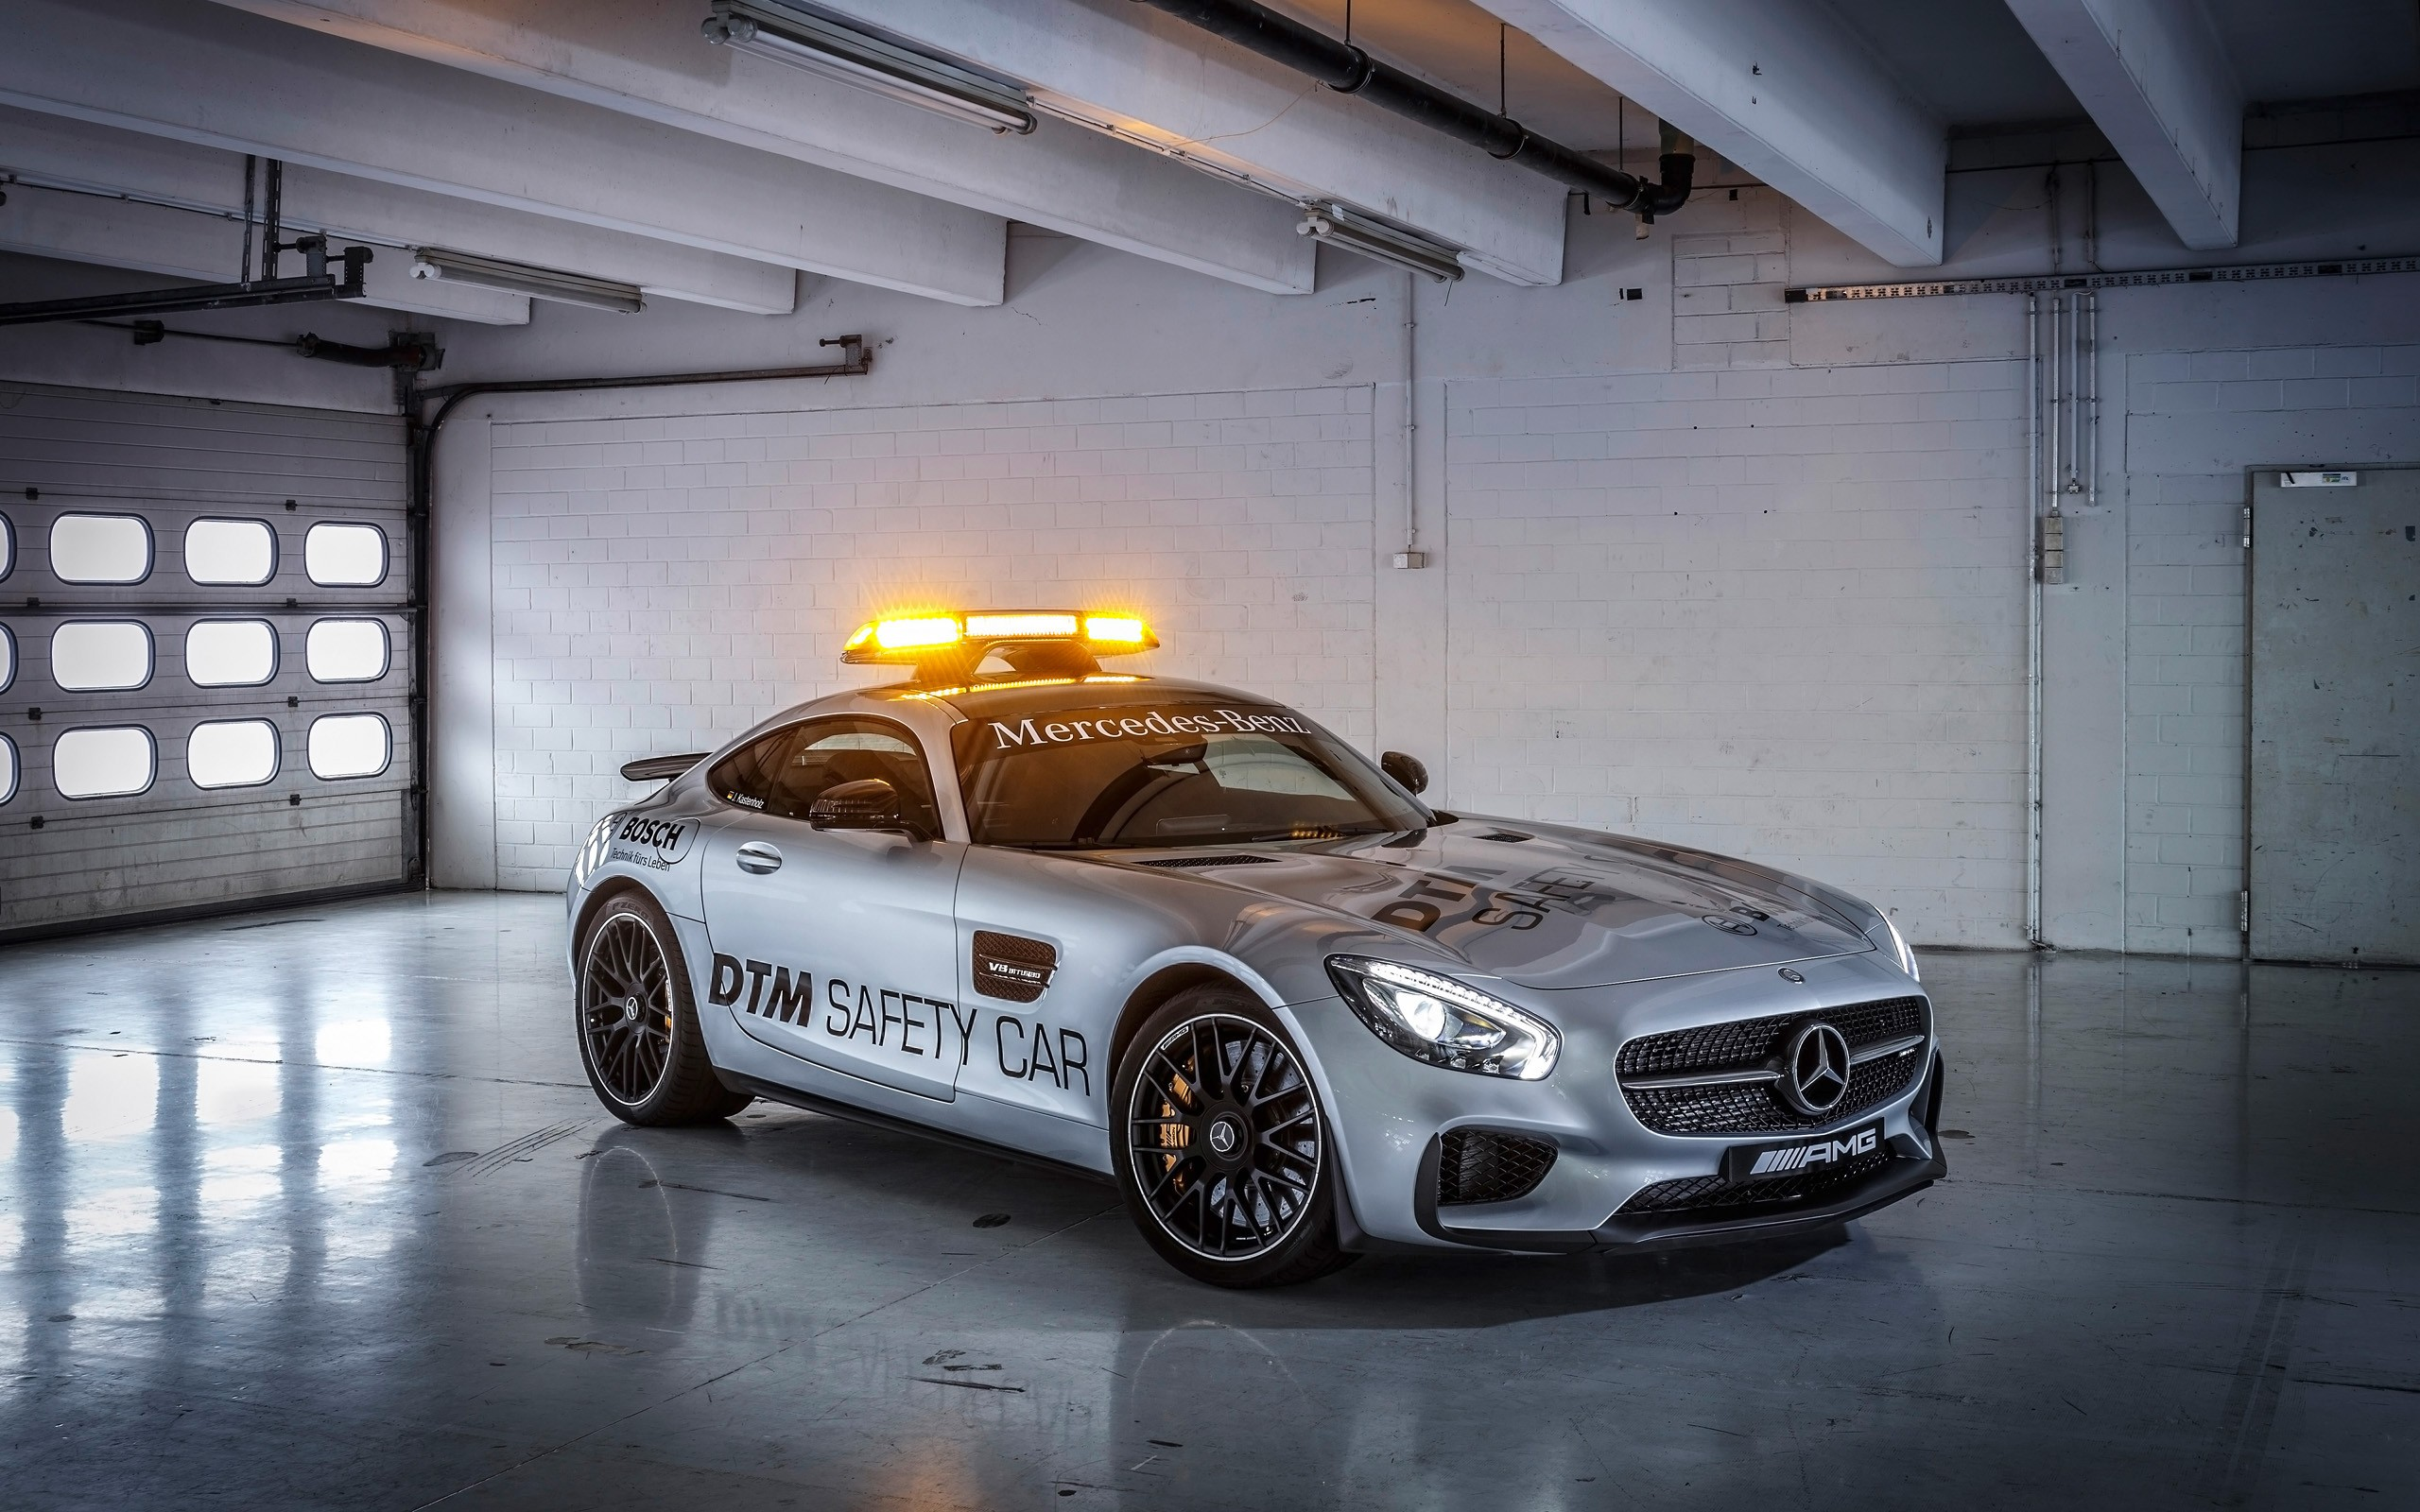 2015 Mercedes Amg Gts Dtm Safety Car Wallpaper Hd Car